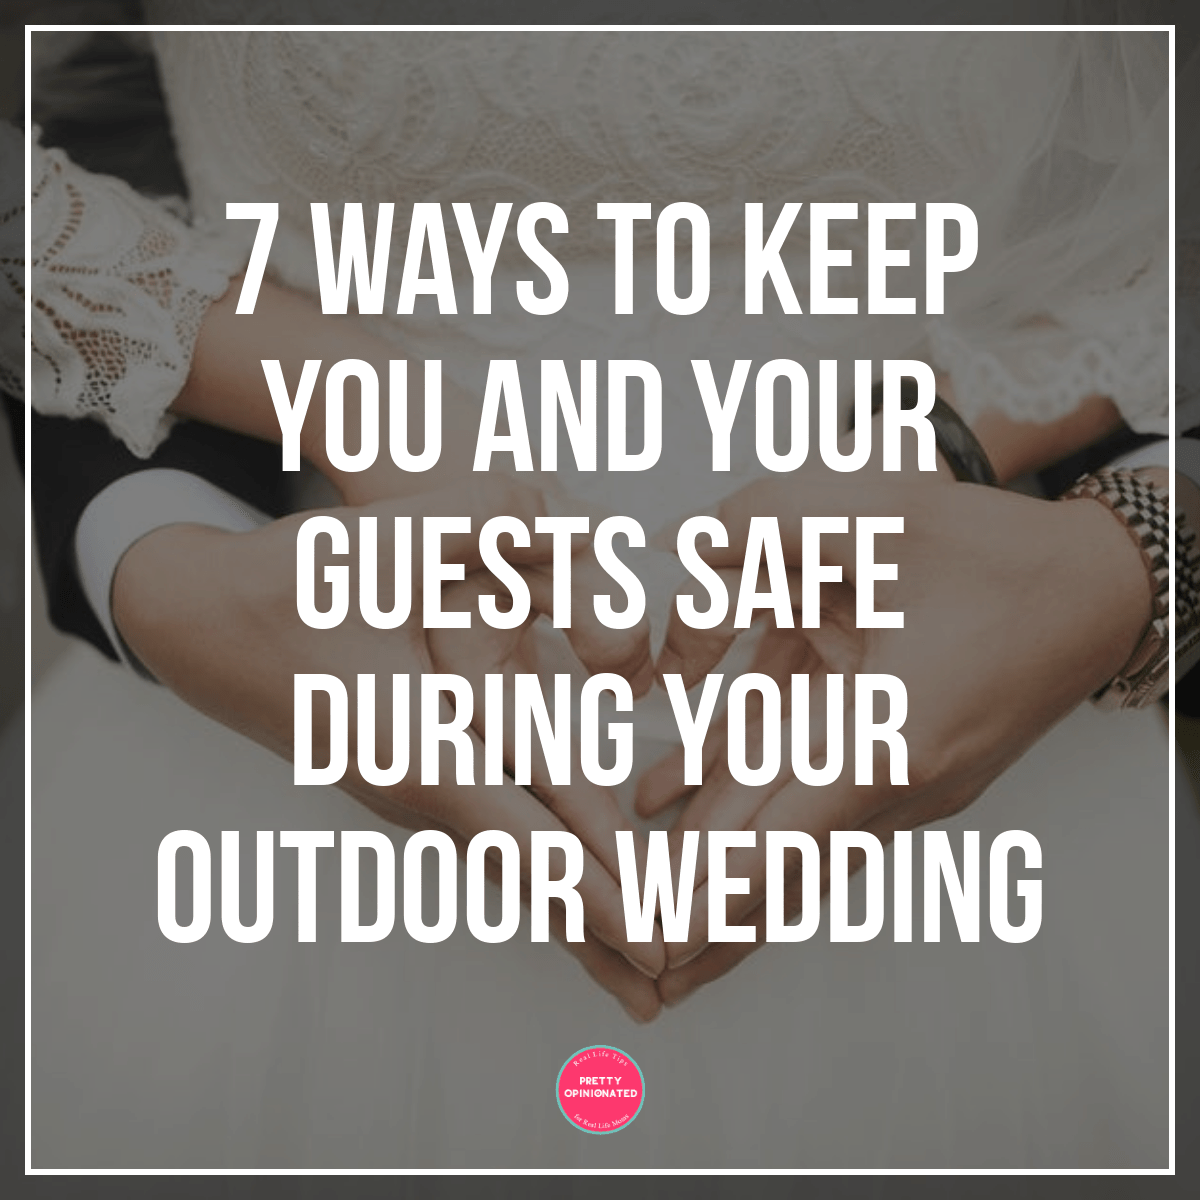 Here are some things you can do to keep you and your wedding guests safe from the dangers that lurk outside in the summer heat.